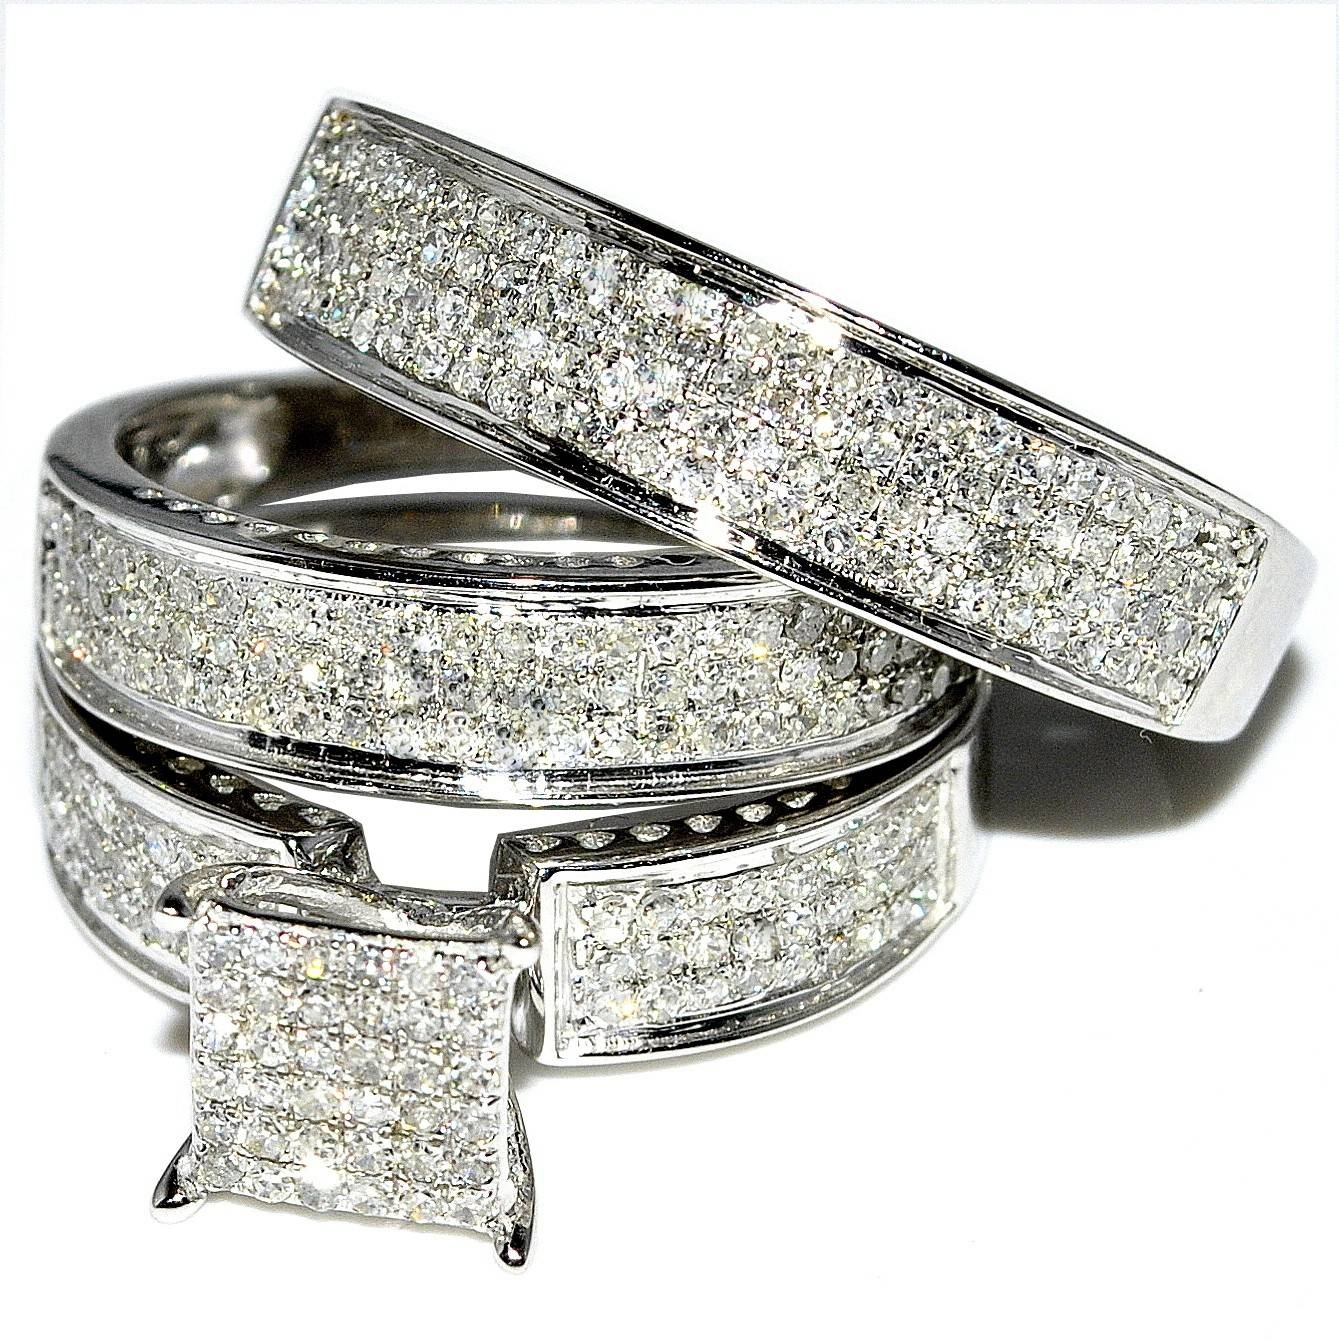 His And Hers Wedding Ring Sets Enchanting His And Hers Wedding With Diamond Wedding Bands Sets His And Hers (View 9 of 15)